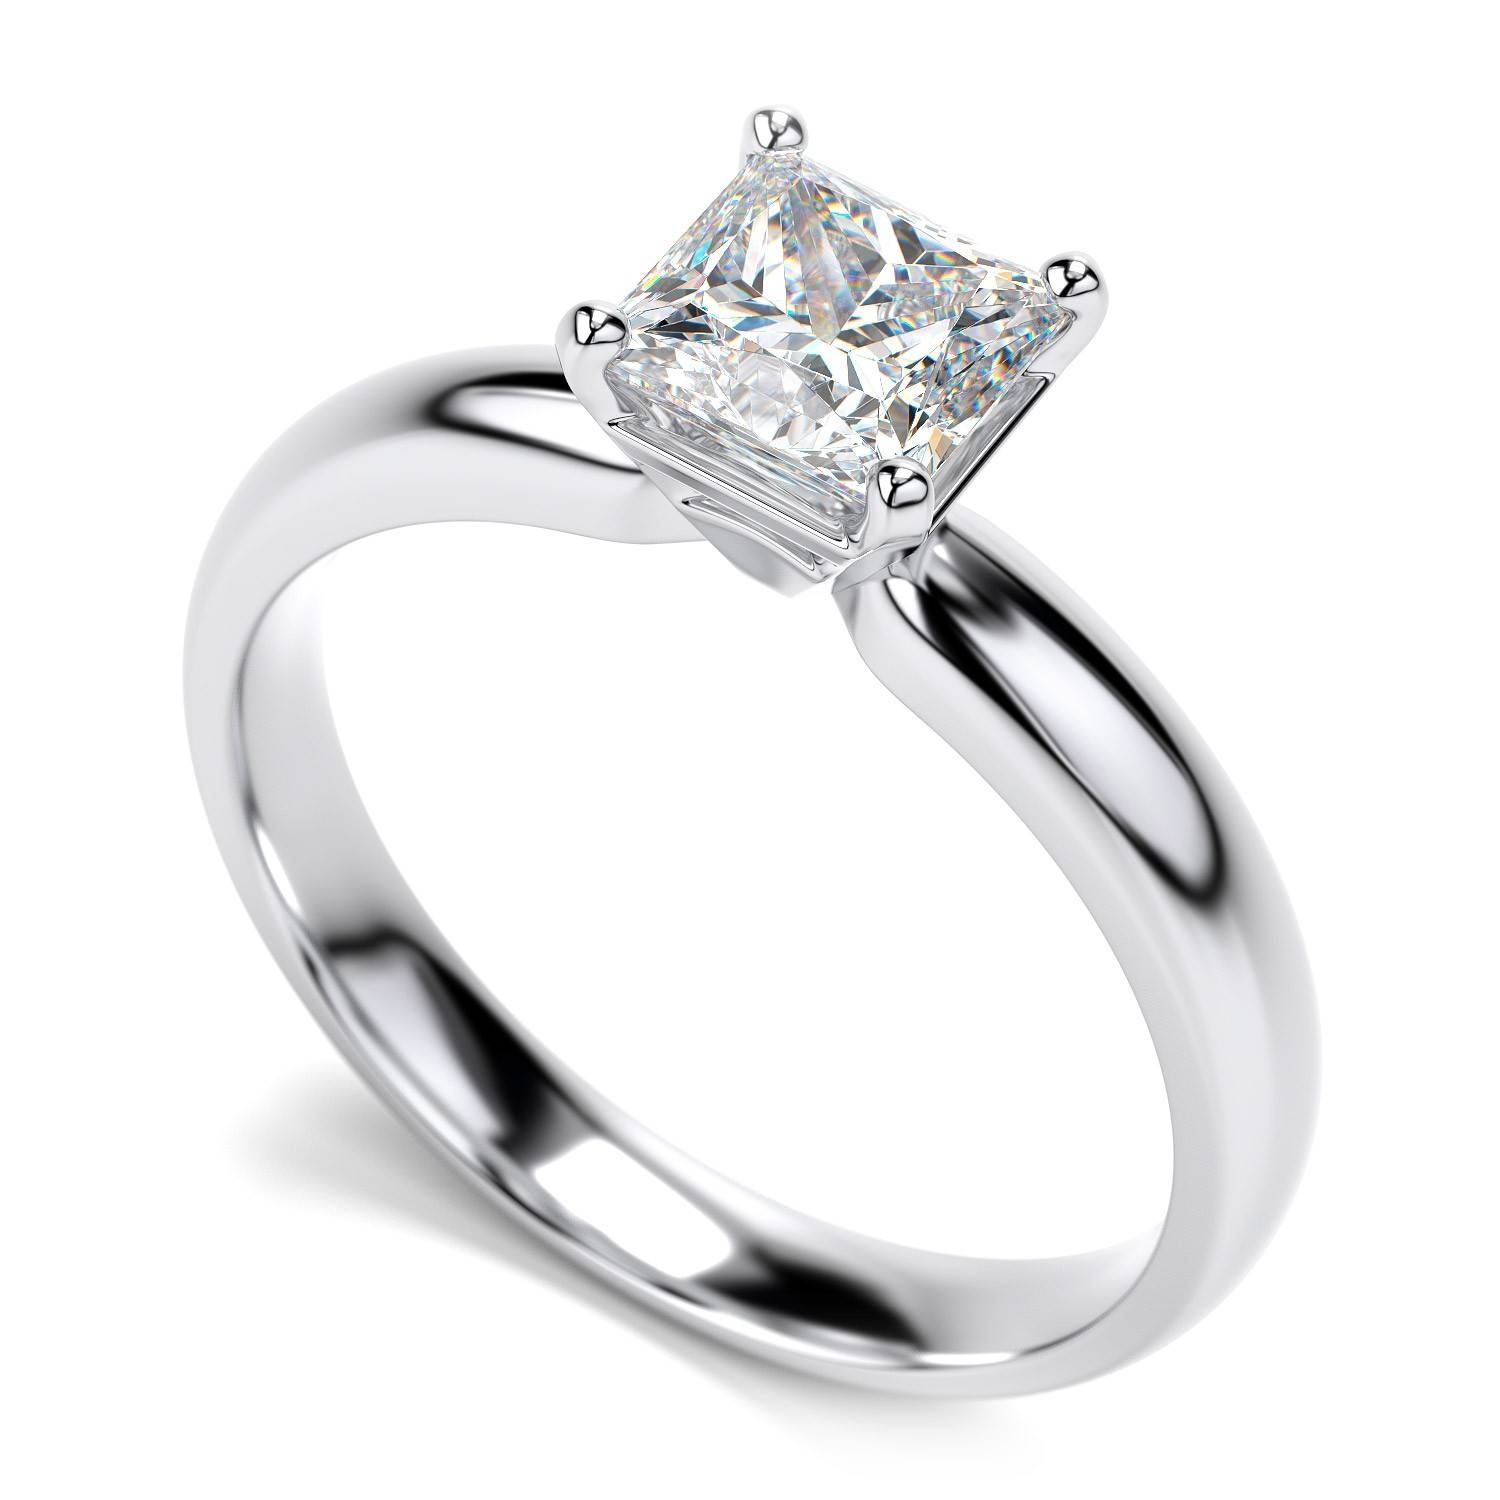 Princess Cut Engagement Rings With Princess Engagement Rings For Women (View 11 of 15)